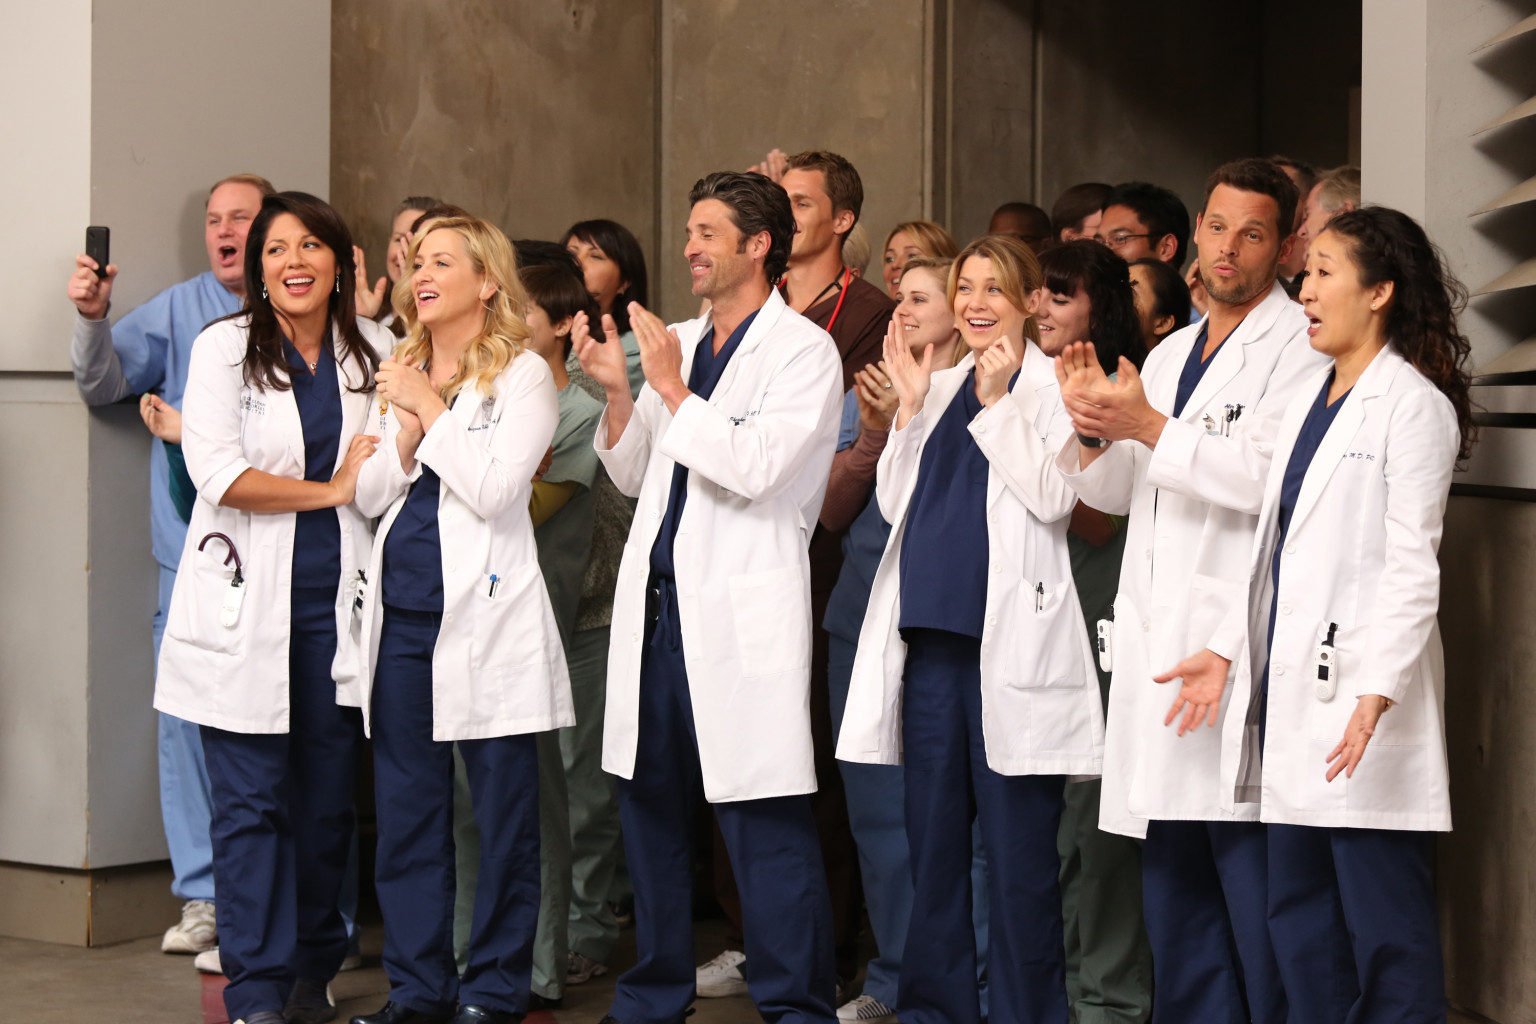 25 Greys Anatomy Episodes To Watch Before Season 10 Huffpost